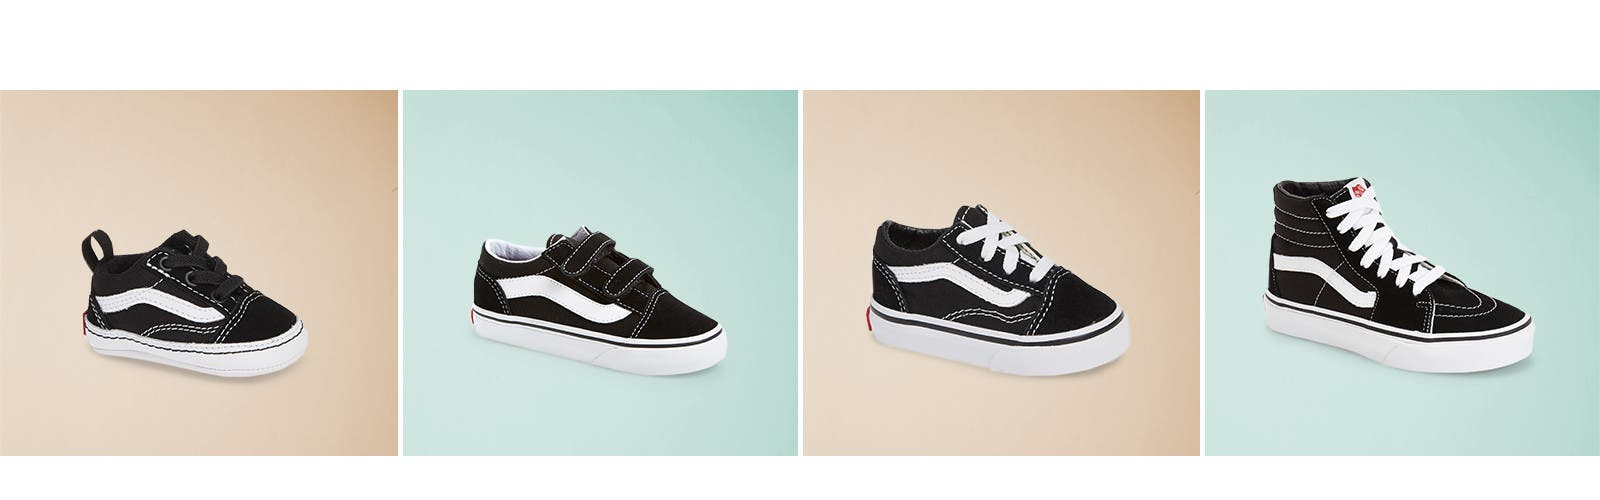 1d48c81e3bd8 The coolest boys  sneakers from Vans